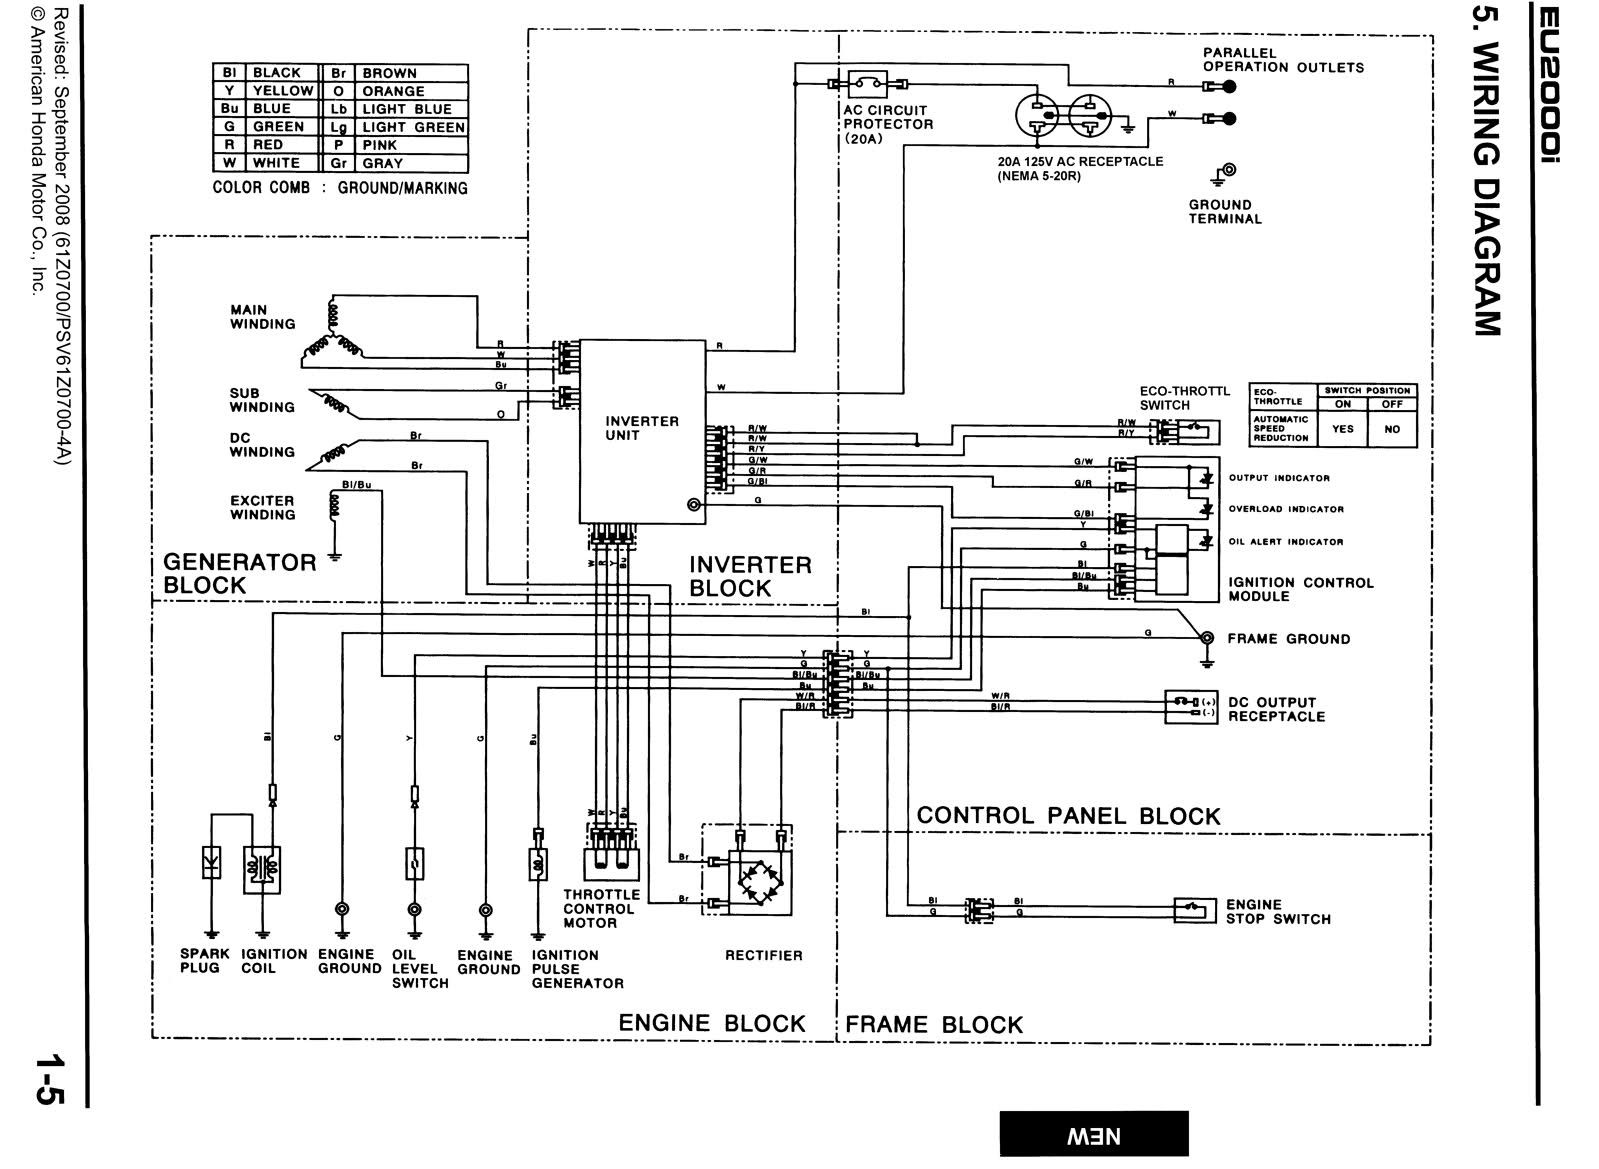 wrg 6760] 125v wiring diagram Basic Electrical Wiring Diagrams